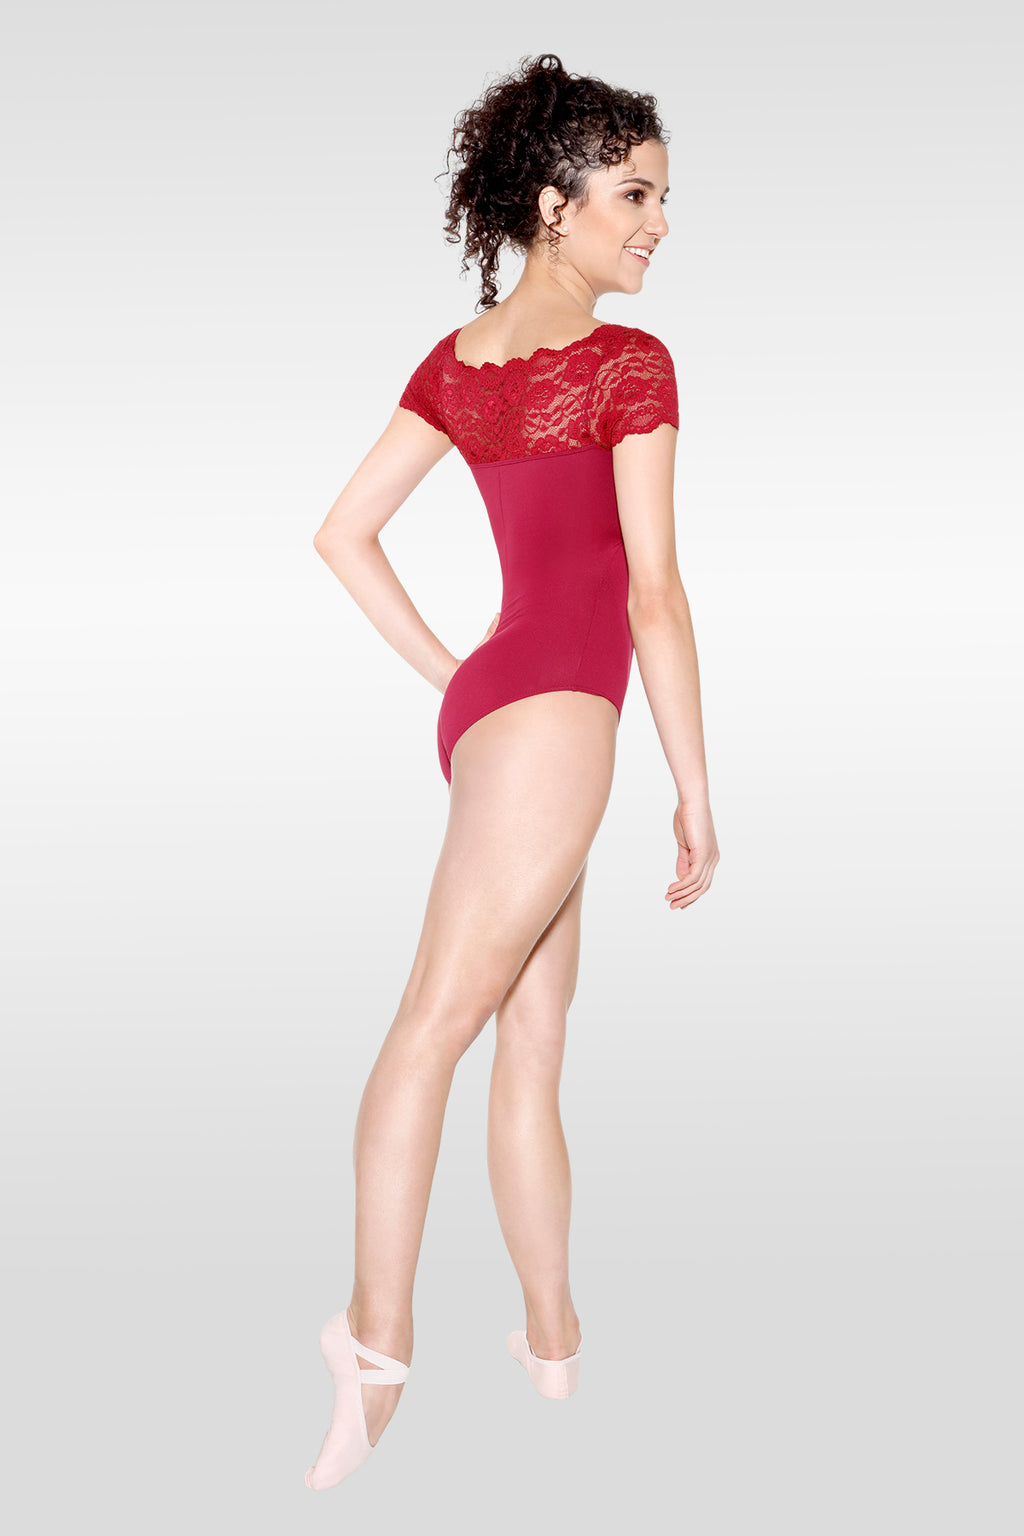 Lace Boatneck Leotard - Adult